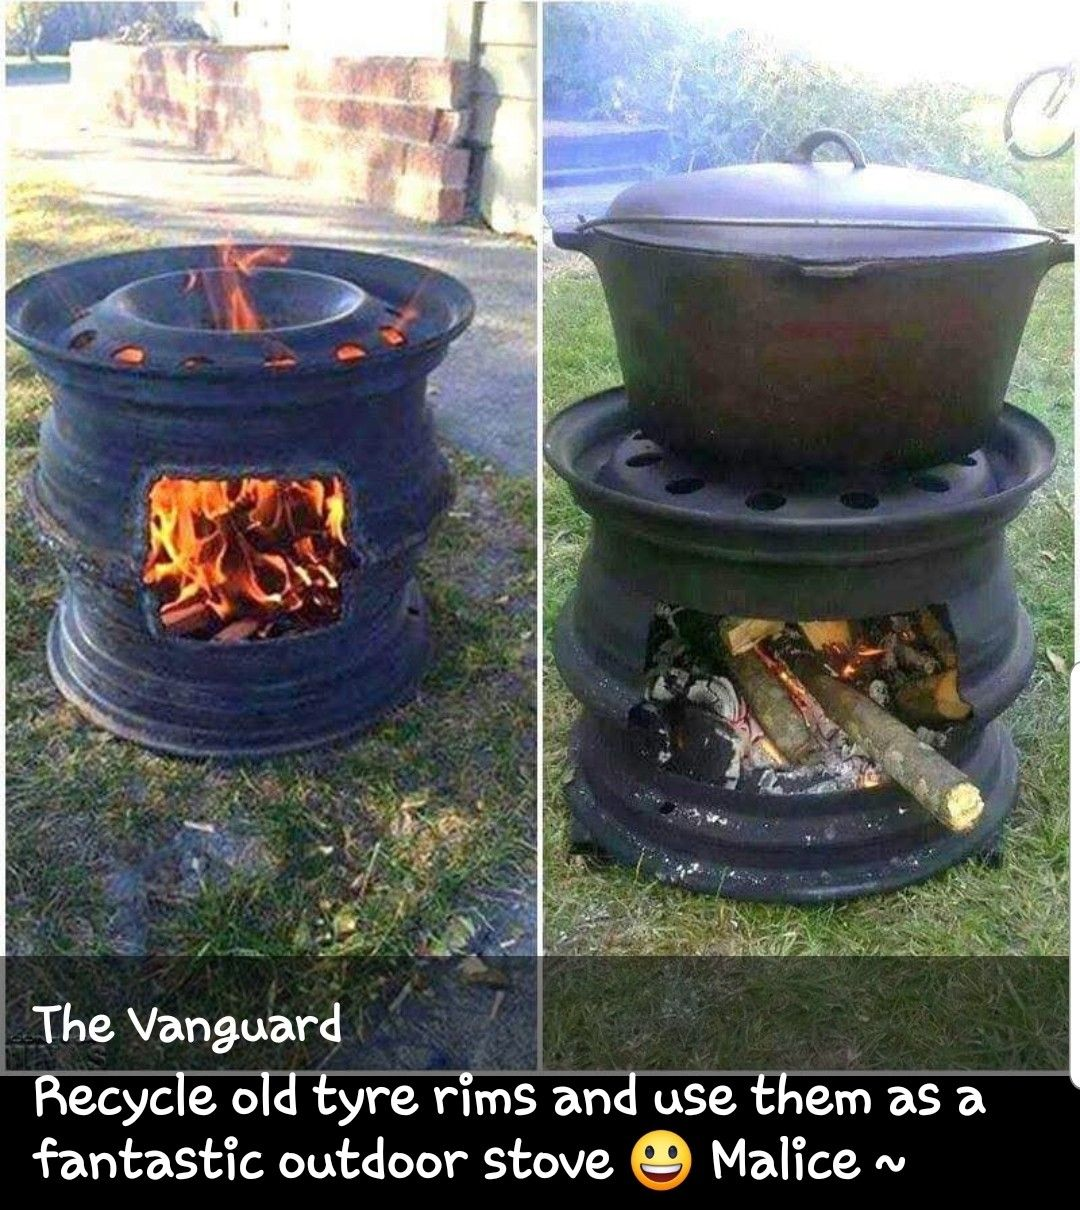 Pin by Dee Brumit on CAMPING 101 | Fire pit backyard diy ...